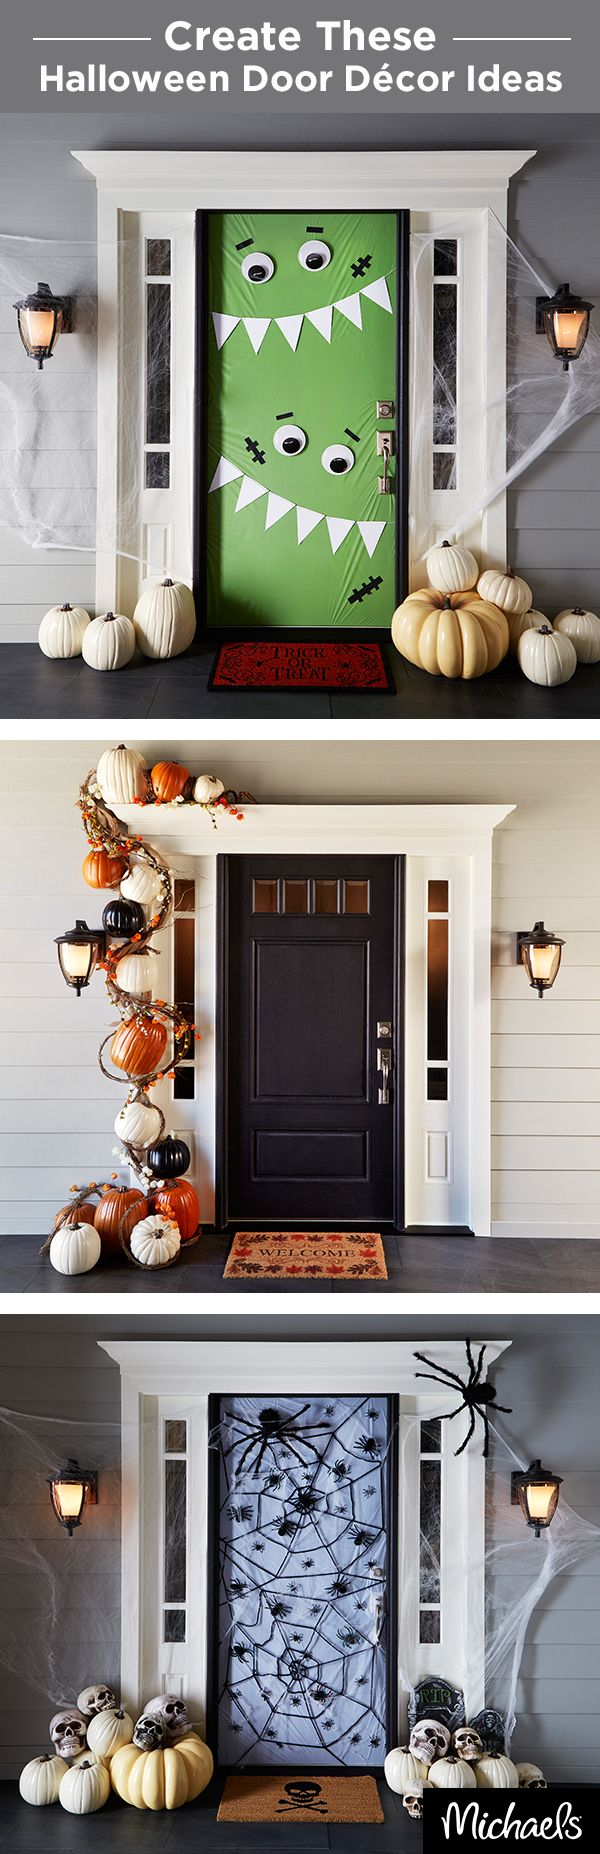 halloween decorations decorate your front door for trick or treaters this halloween these 3 door dcor ideas are simple to make and will welcome even the - Halloween Front Doors